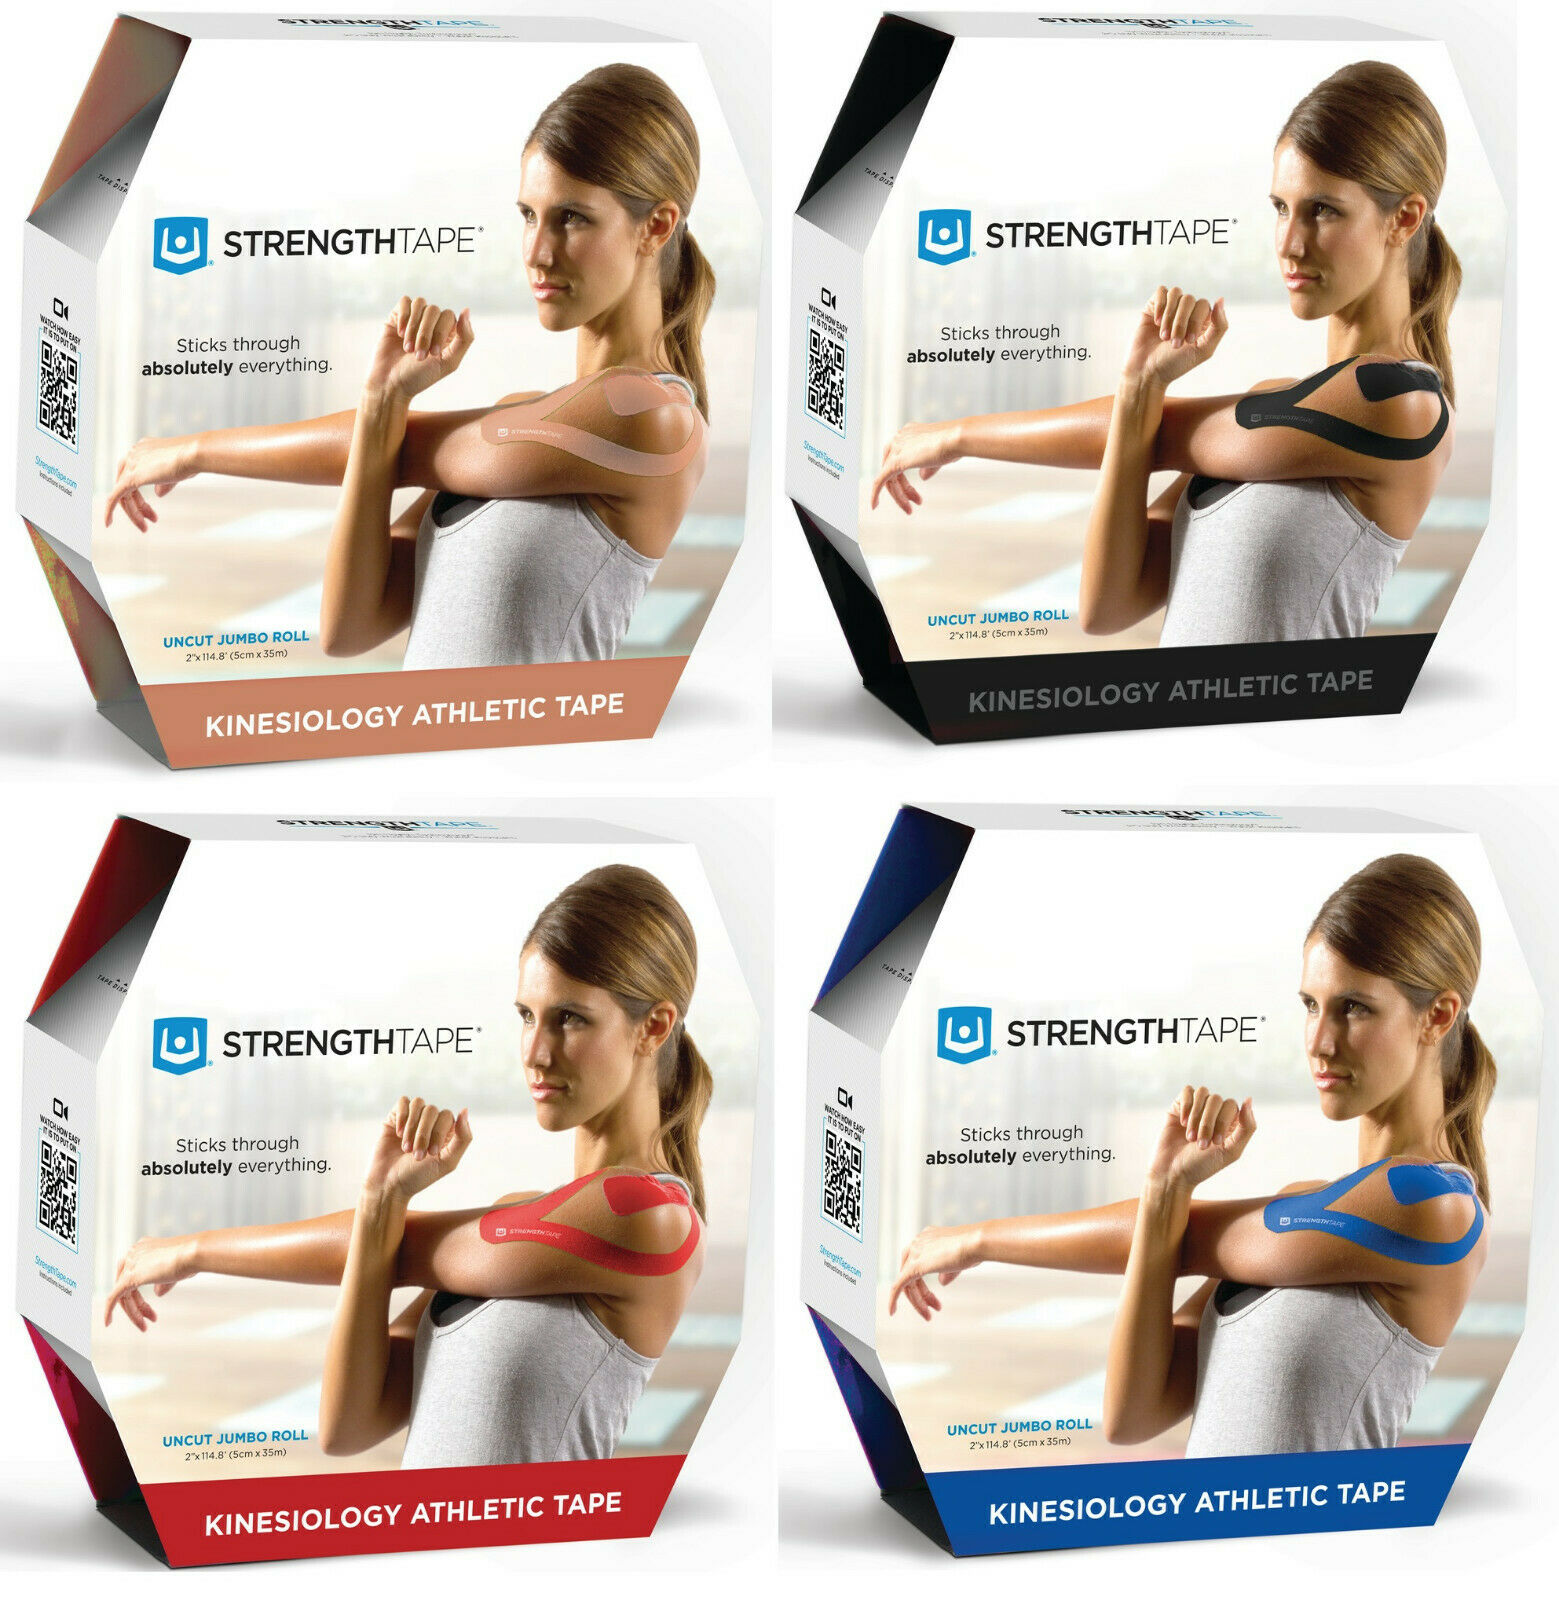 STRENGTHTAPE Kinesiology Long-Lasting  Athletic Tape 35m Uncut Roll - 4 COLORS  all in high quality and low price